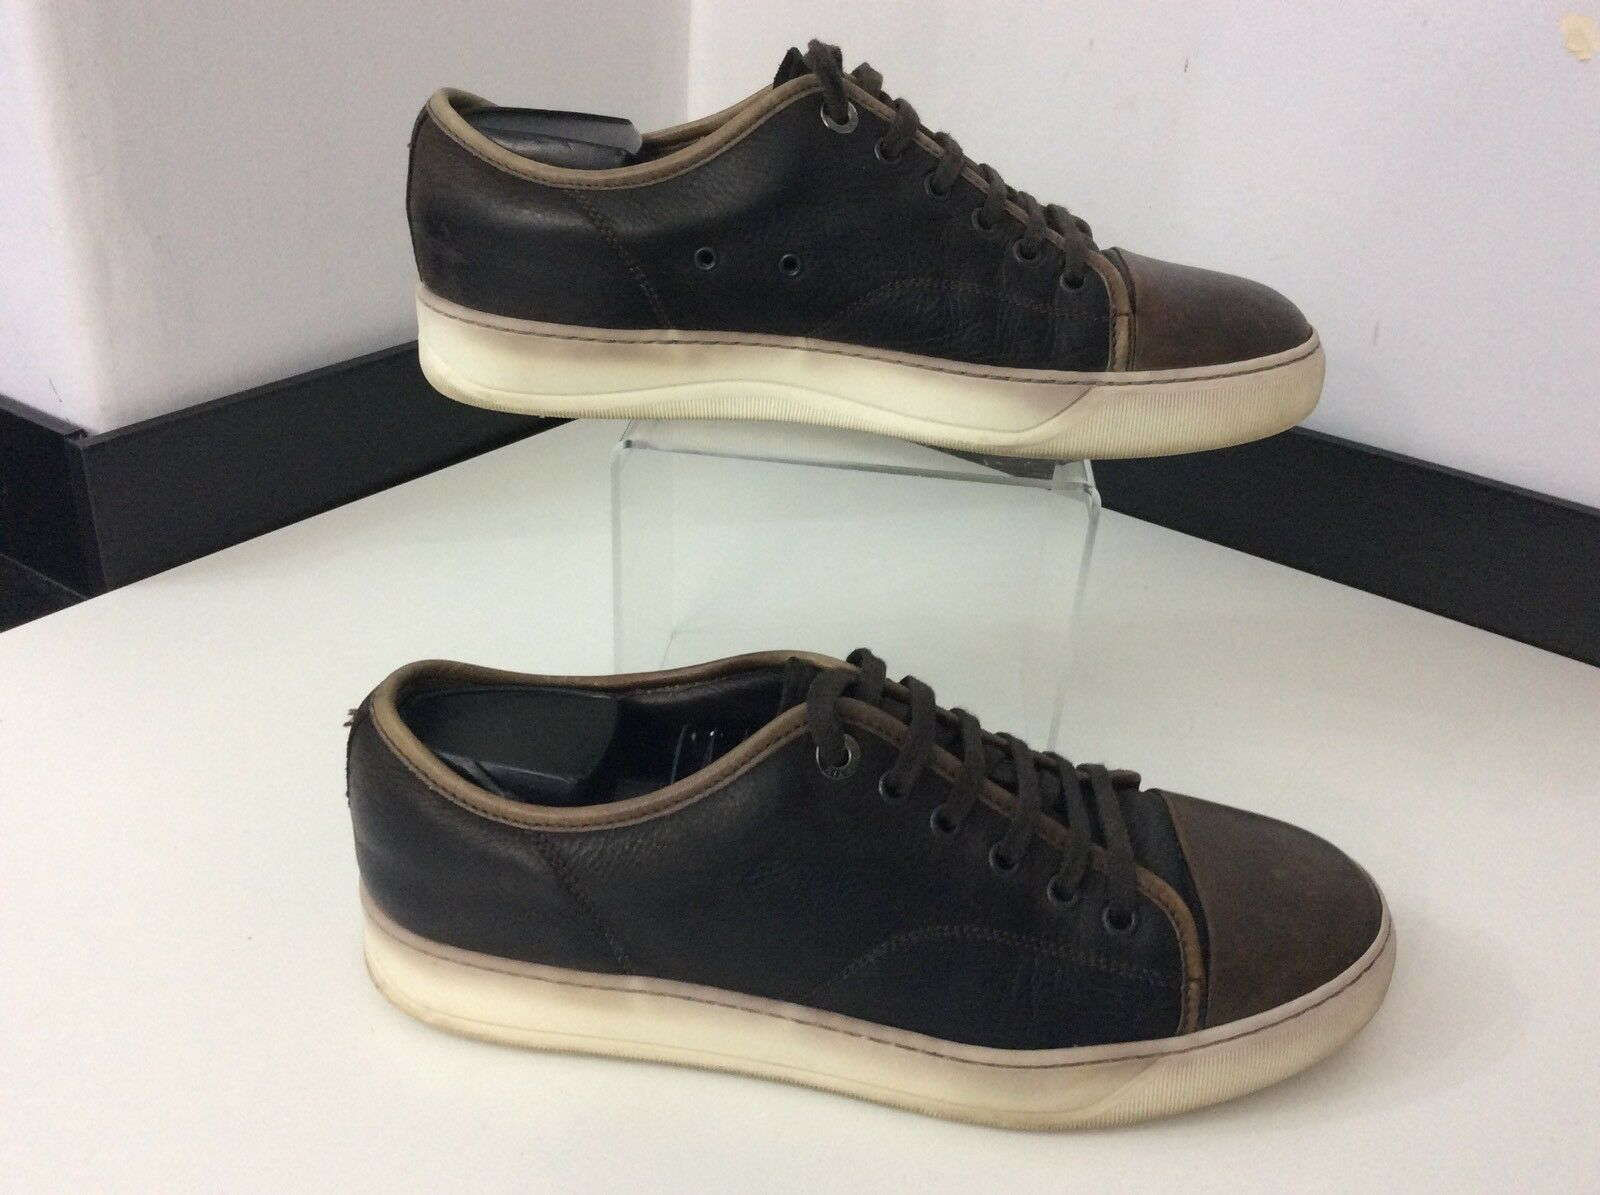 Lanvin Men's Leather Sneakers, Uk 7 Eu41, Brown Leather, shoes, Trainers GC